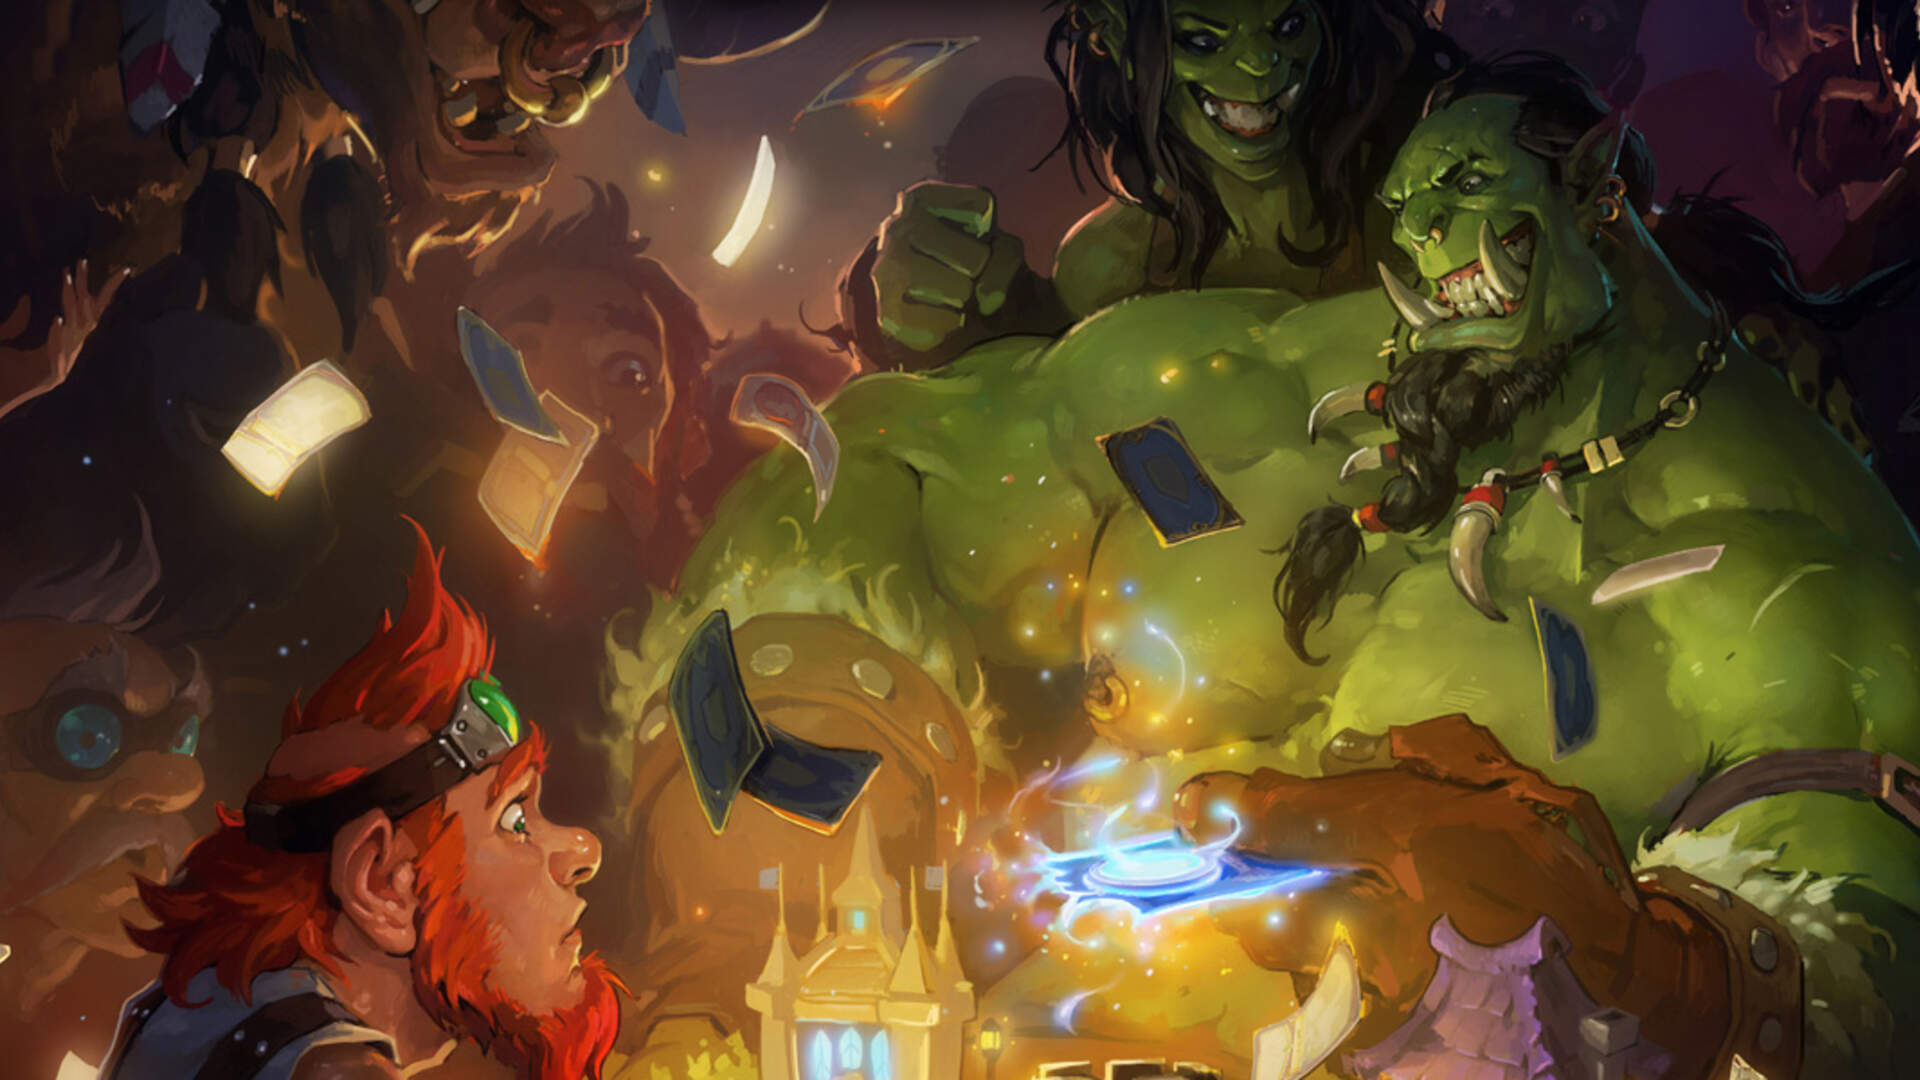 Blizzard's New Mobile Game Could Be Based on WarCraft